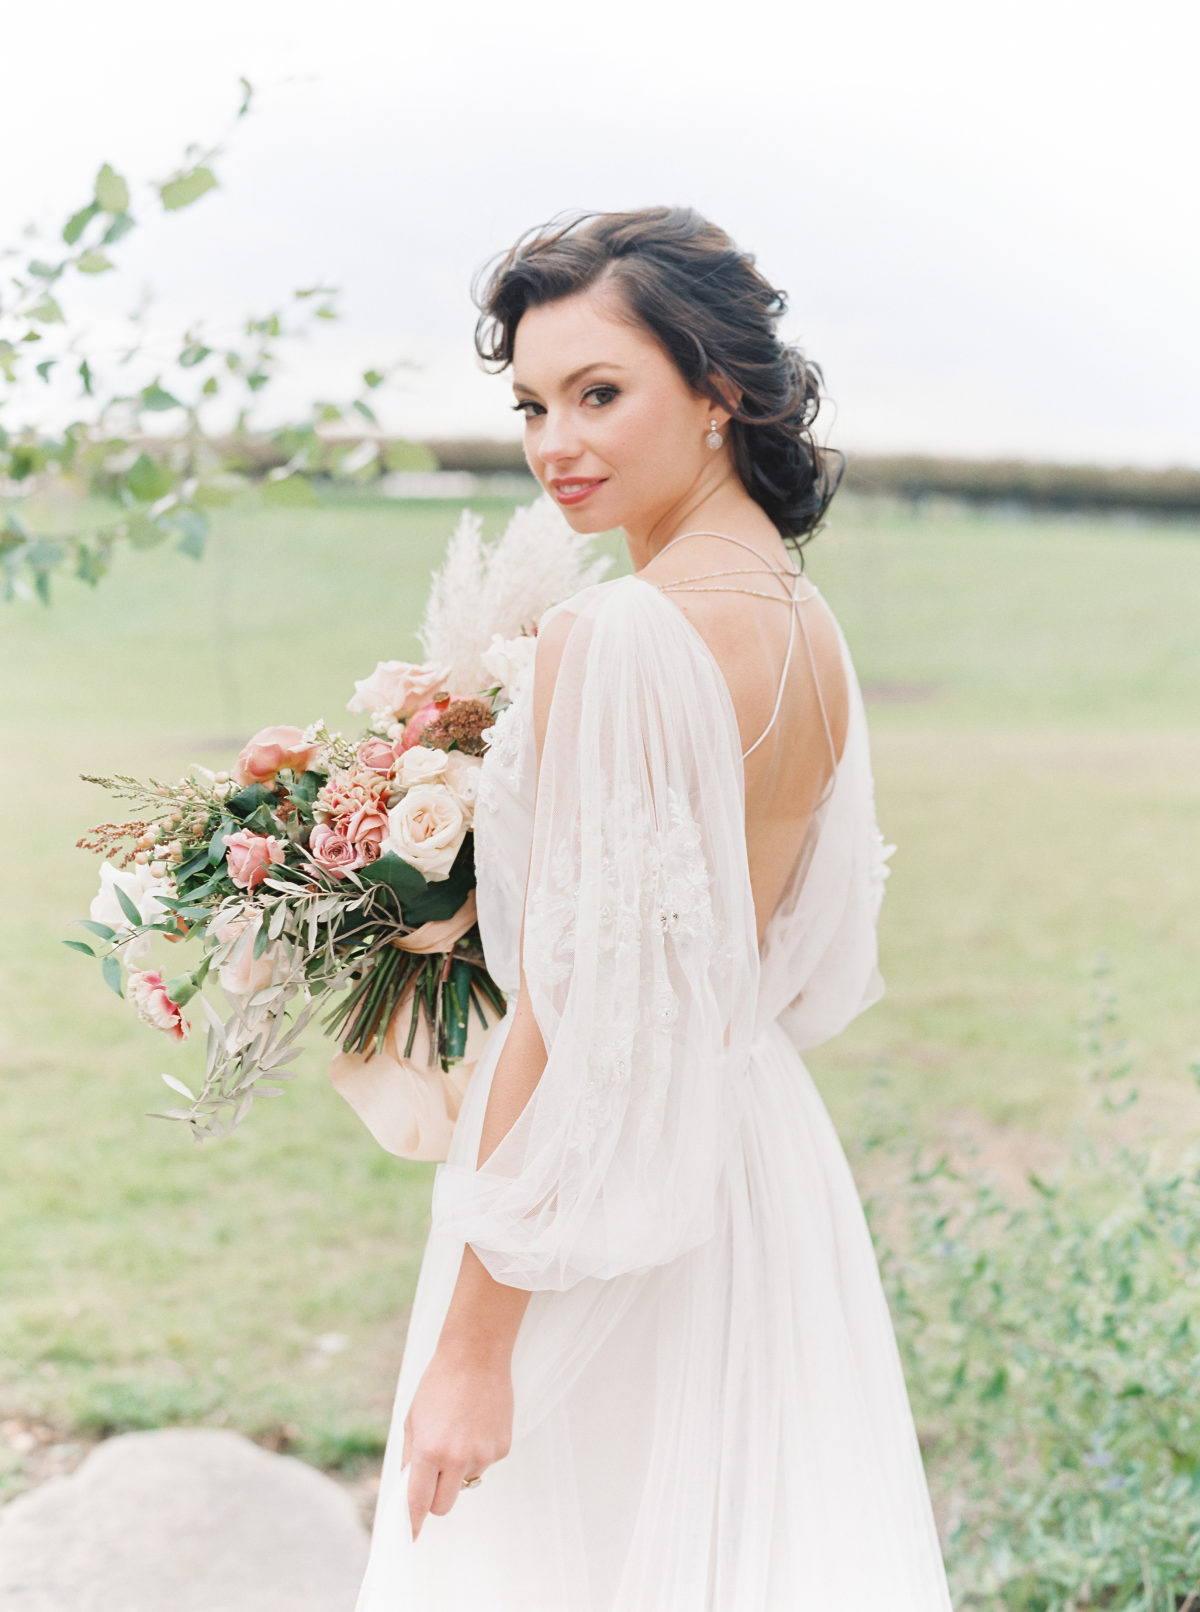 Are you stuck browsing Pinterest and thinking about how much every wedding looks exactly the same?? We feel ya. 2019 is full of new and inspiring bridal trends that are sure to set you apart from the rest! We like to say that individuality is built into these trends. Here are seven of our favorites with tips on how to incorporate them into your wedding, what works well with them, and what kind of vibe they can create for your wedding!